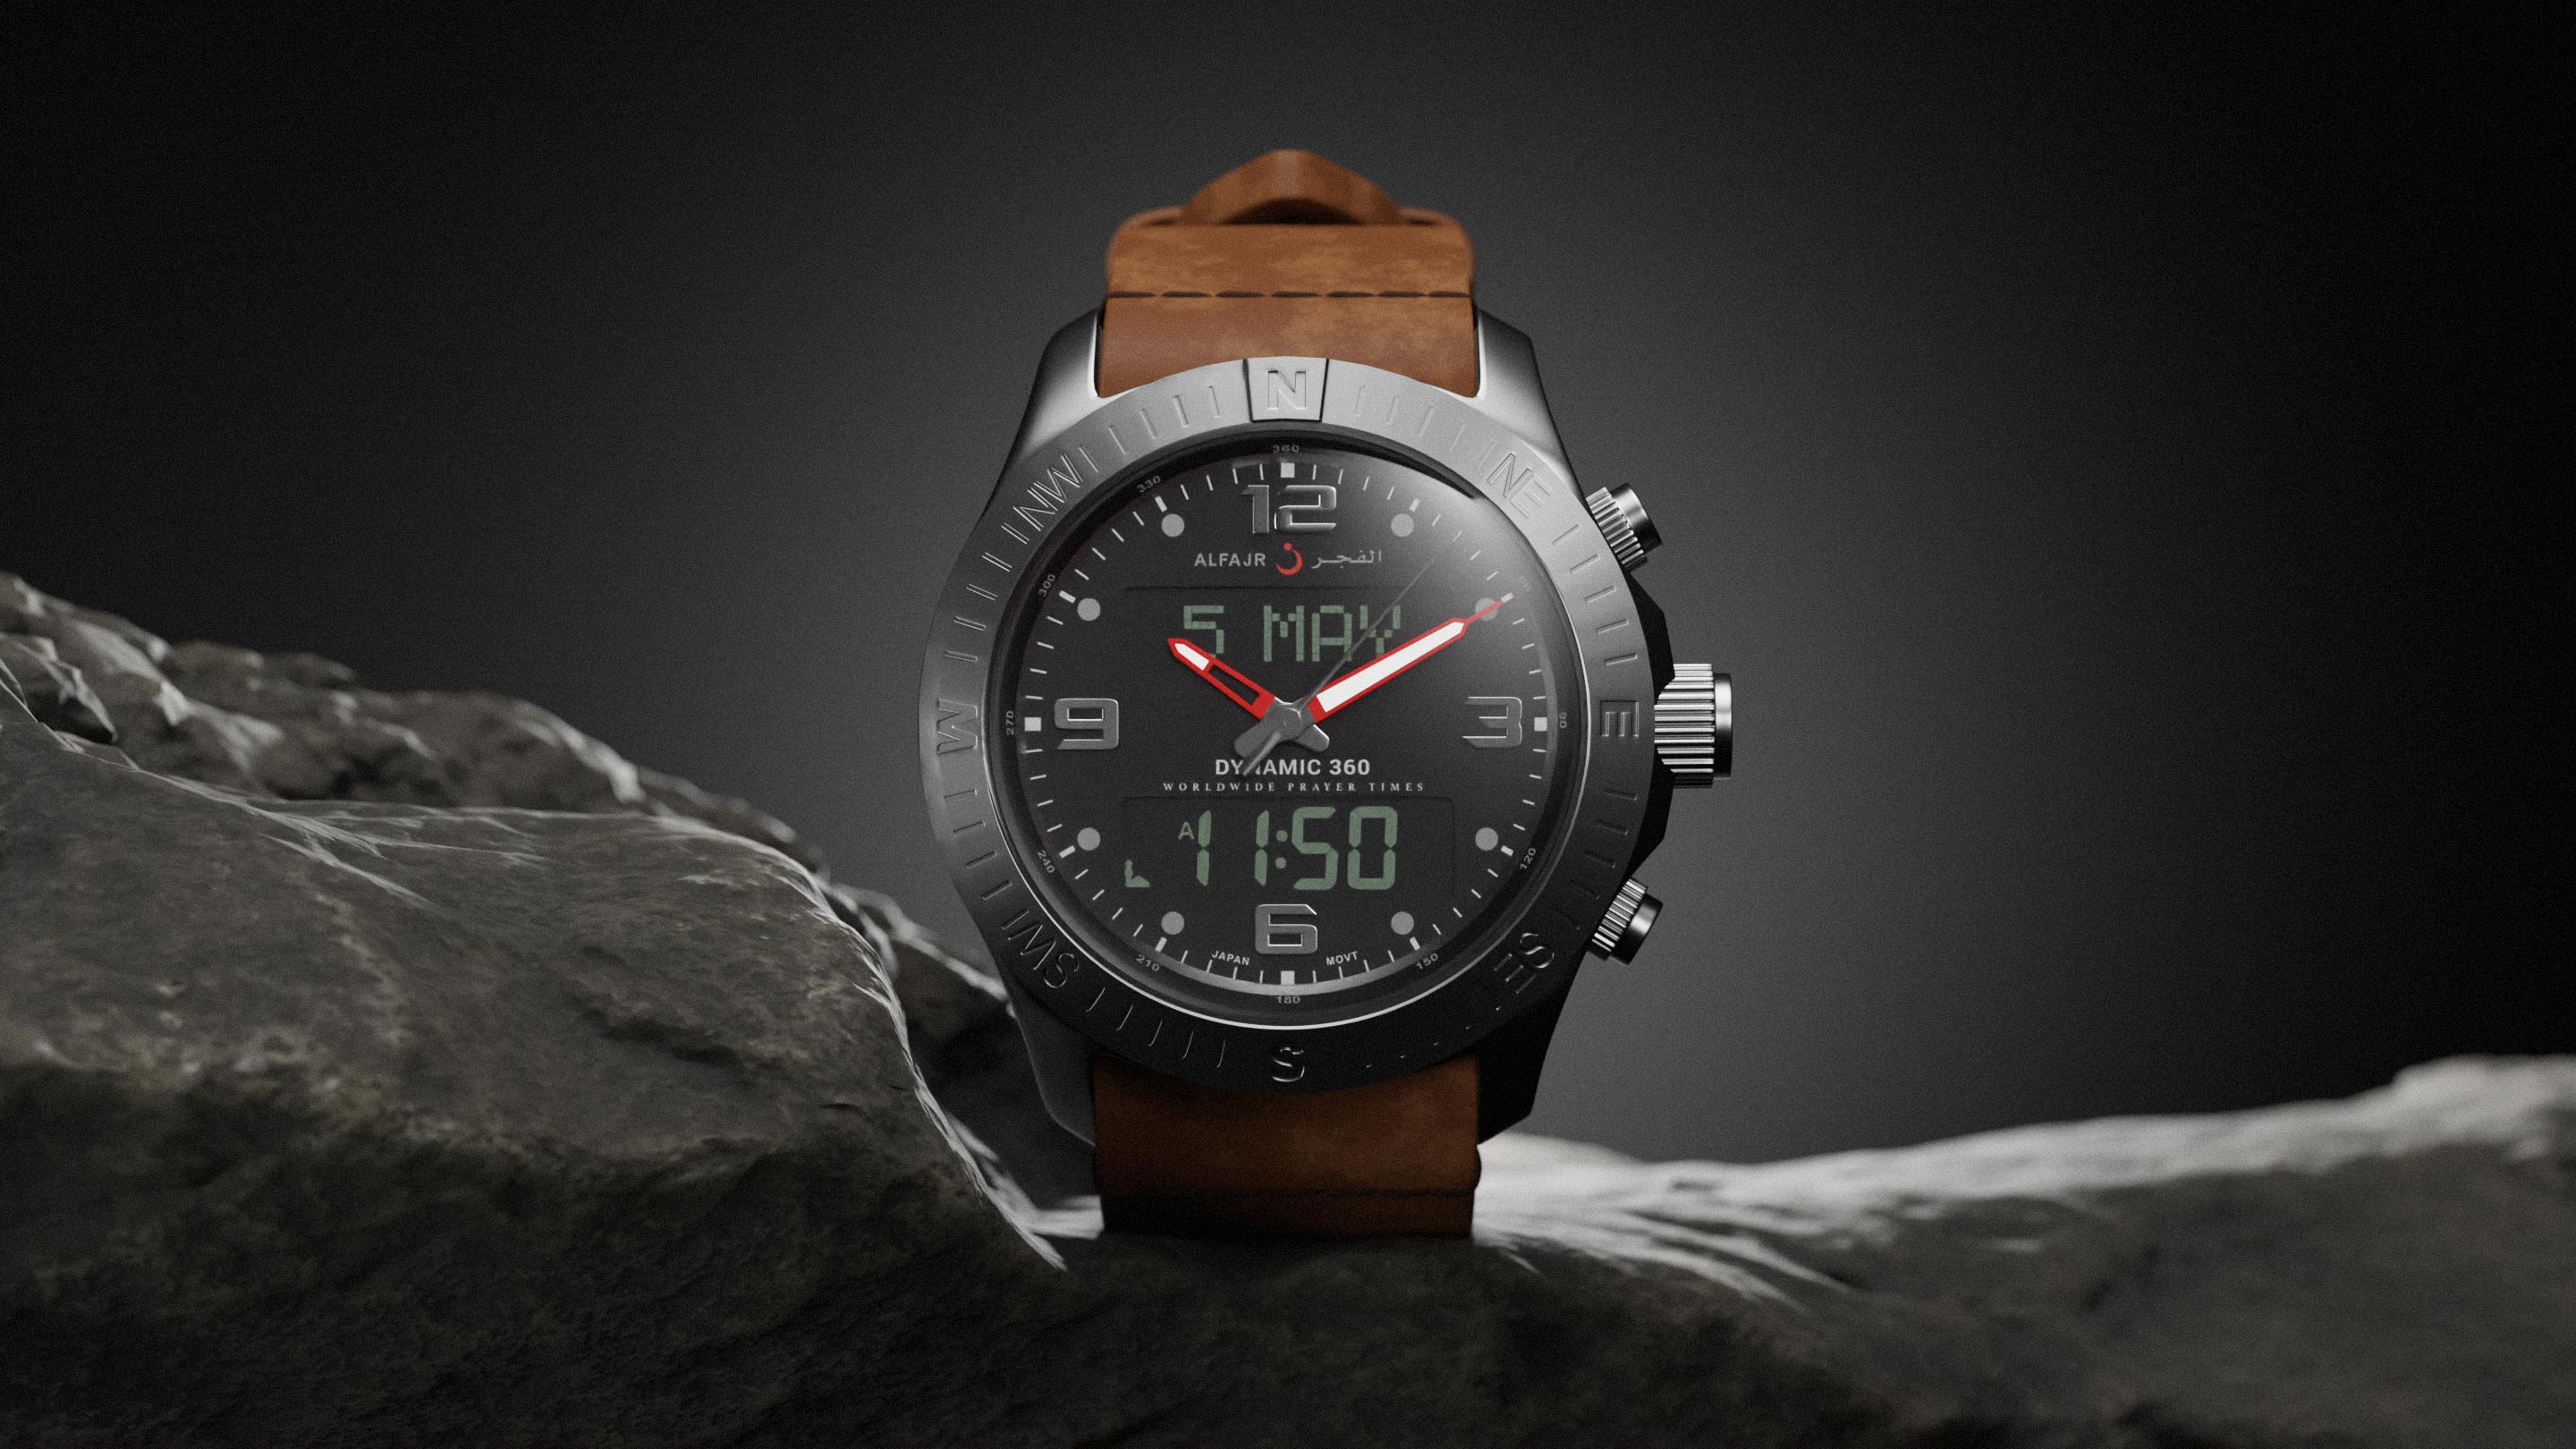 Creative watch product photography